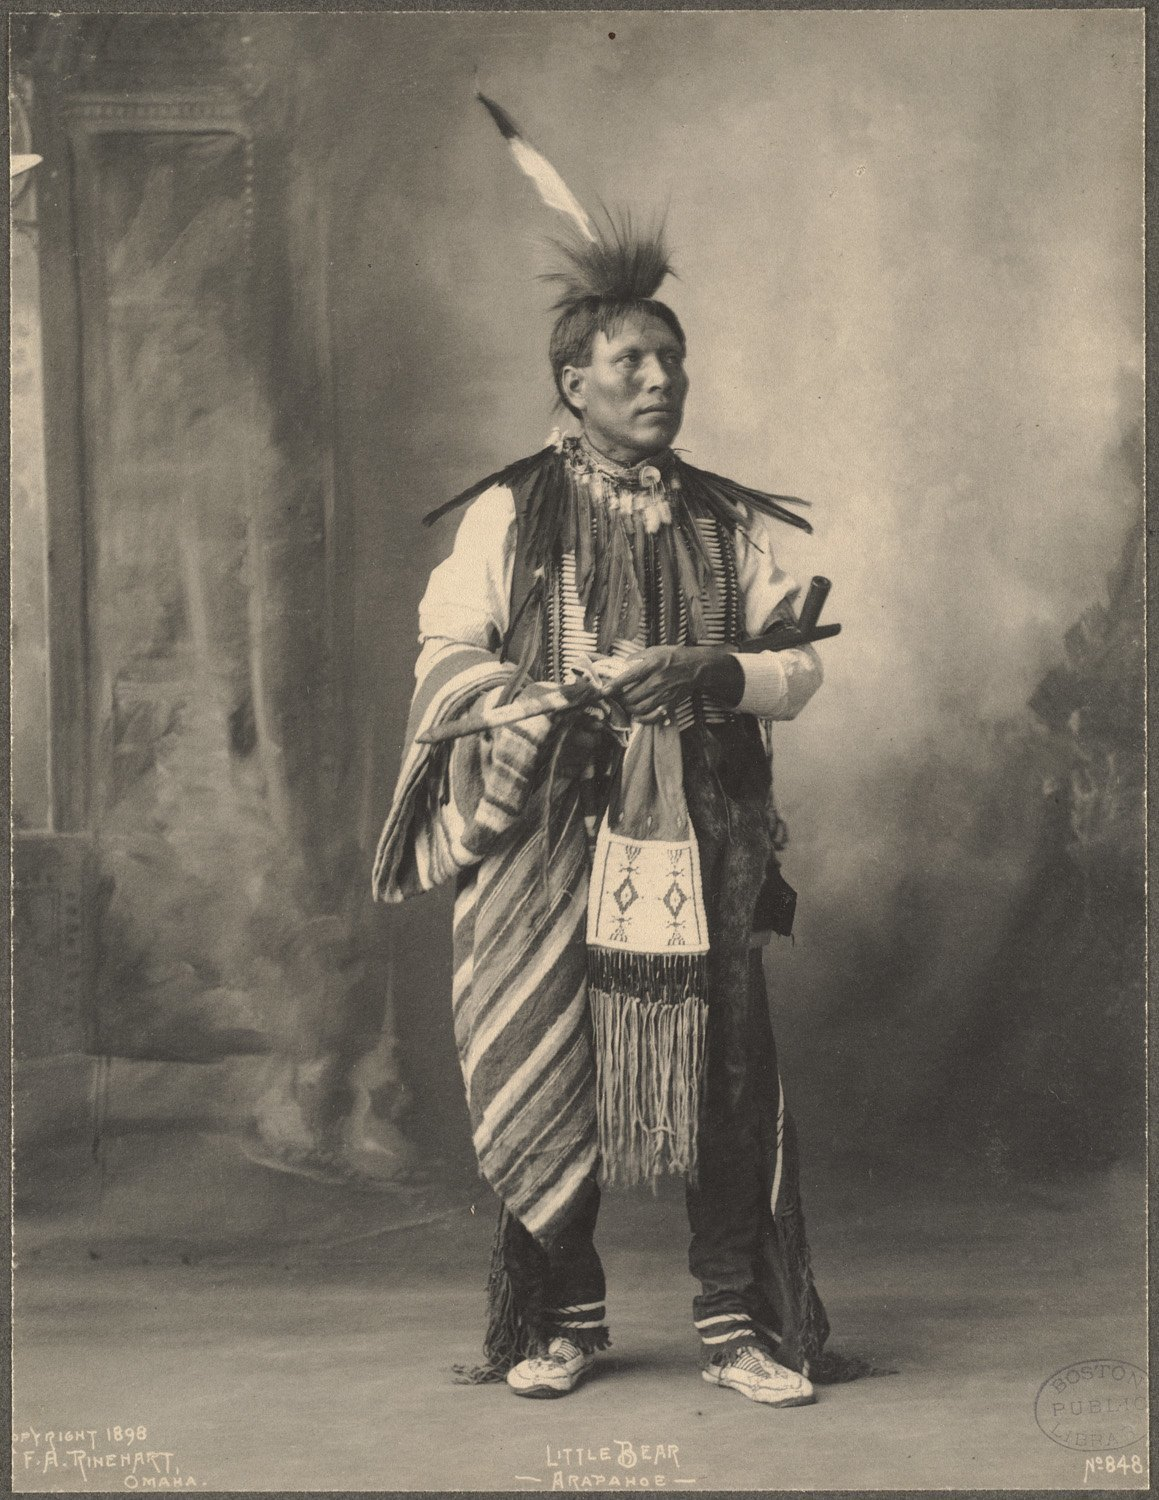 Little Bear, Arapahoe, 1899. (Photo by Frank A. Rinehart)